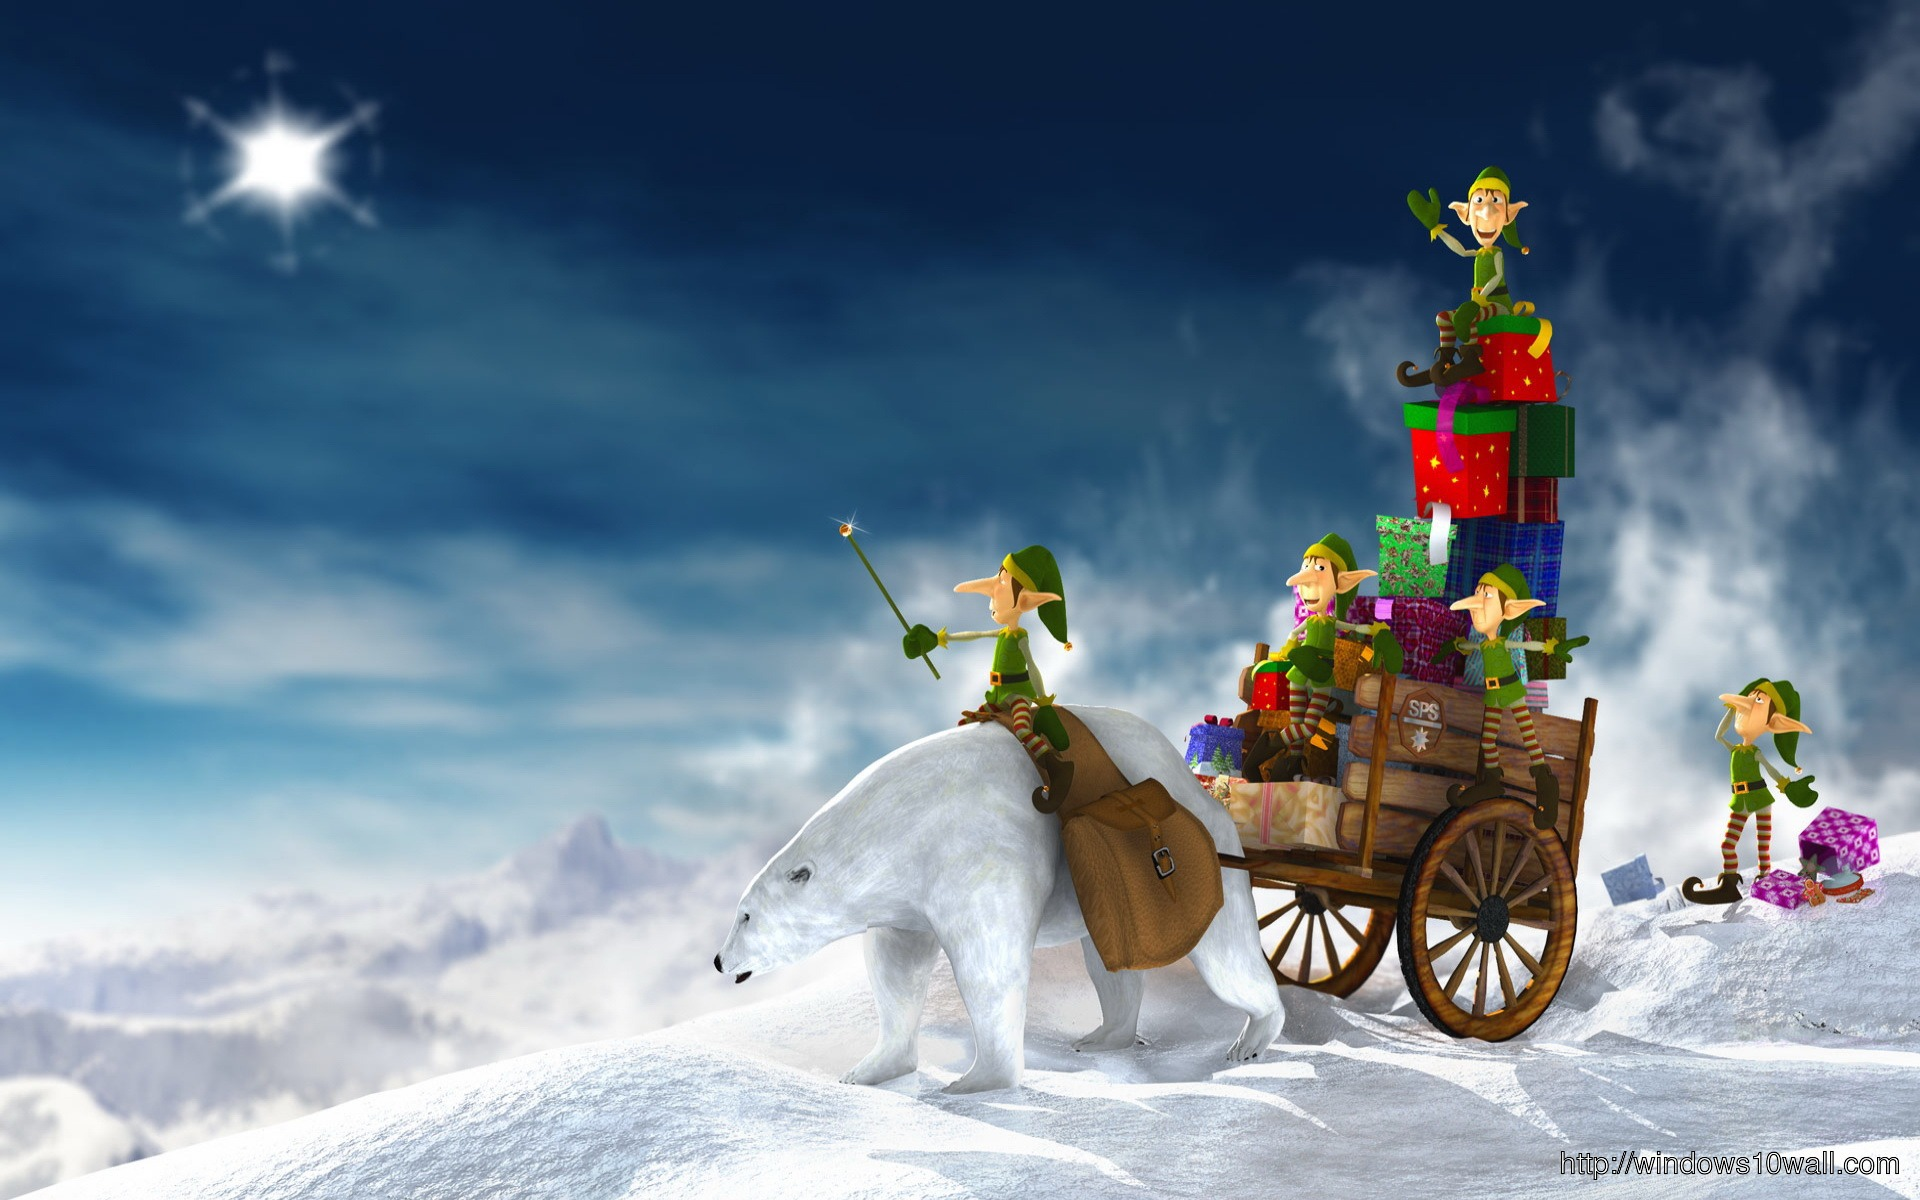 Winter Christmas Wallpapers Windows 10 Wallpapers